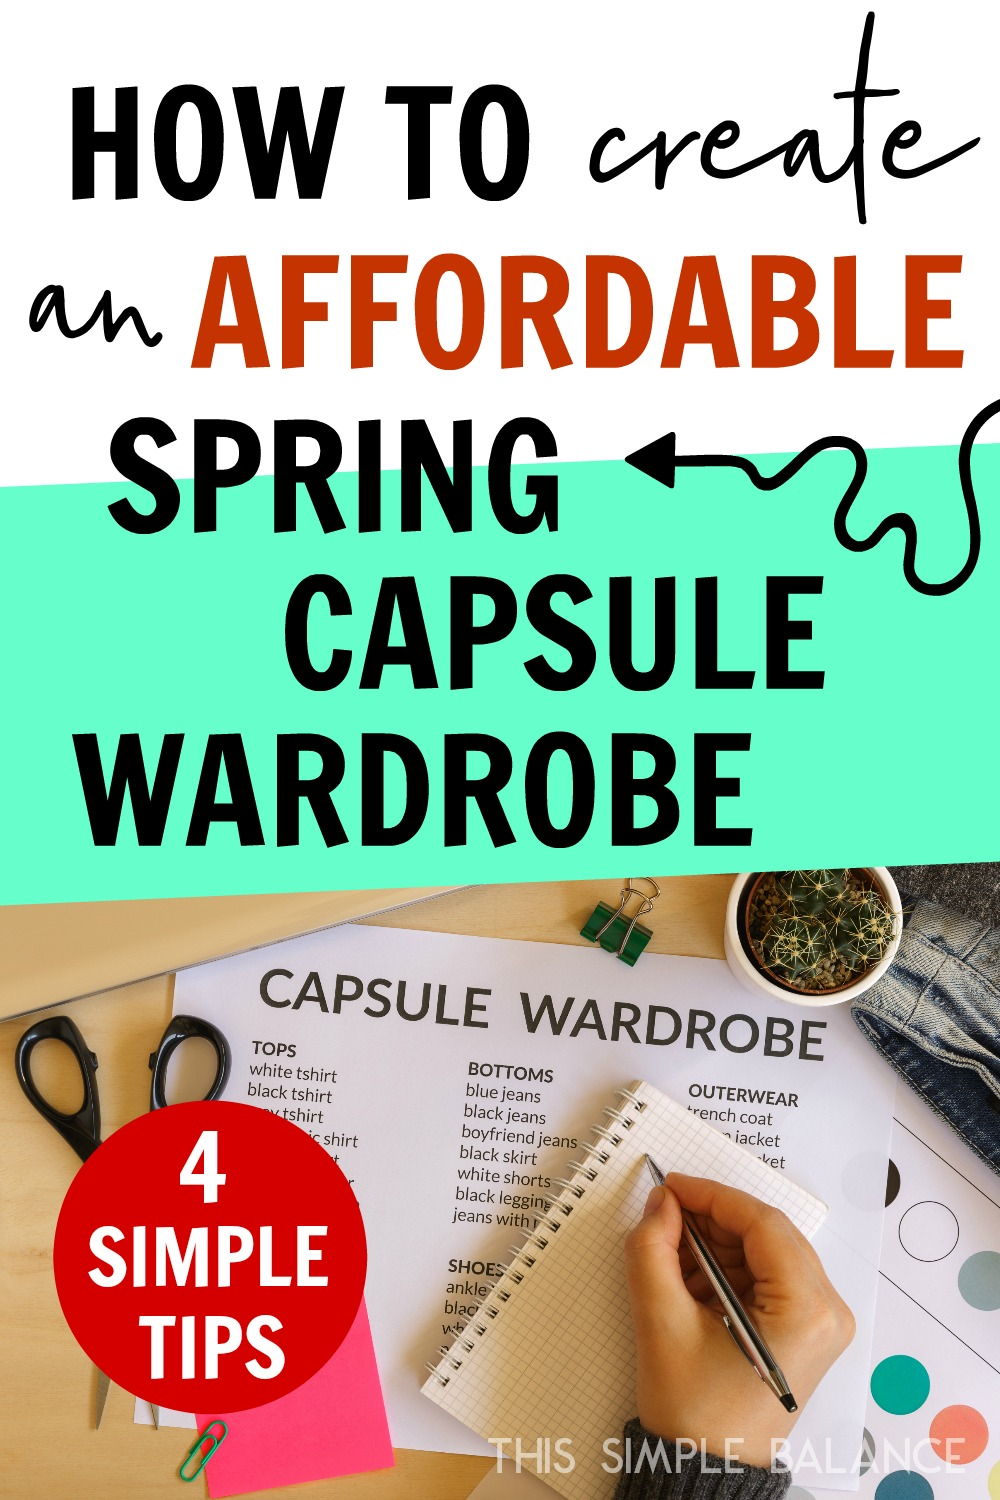 Create an affordable spring capsule wardrobe using these simple questions and tips! #capsulewardrobe